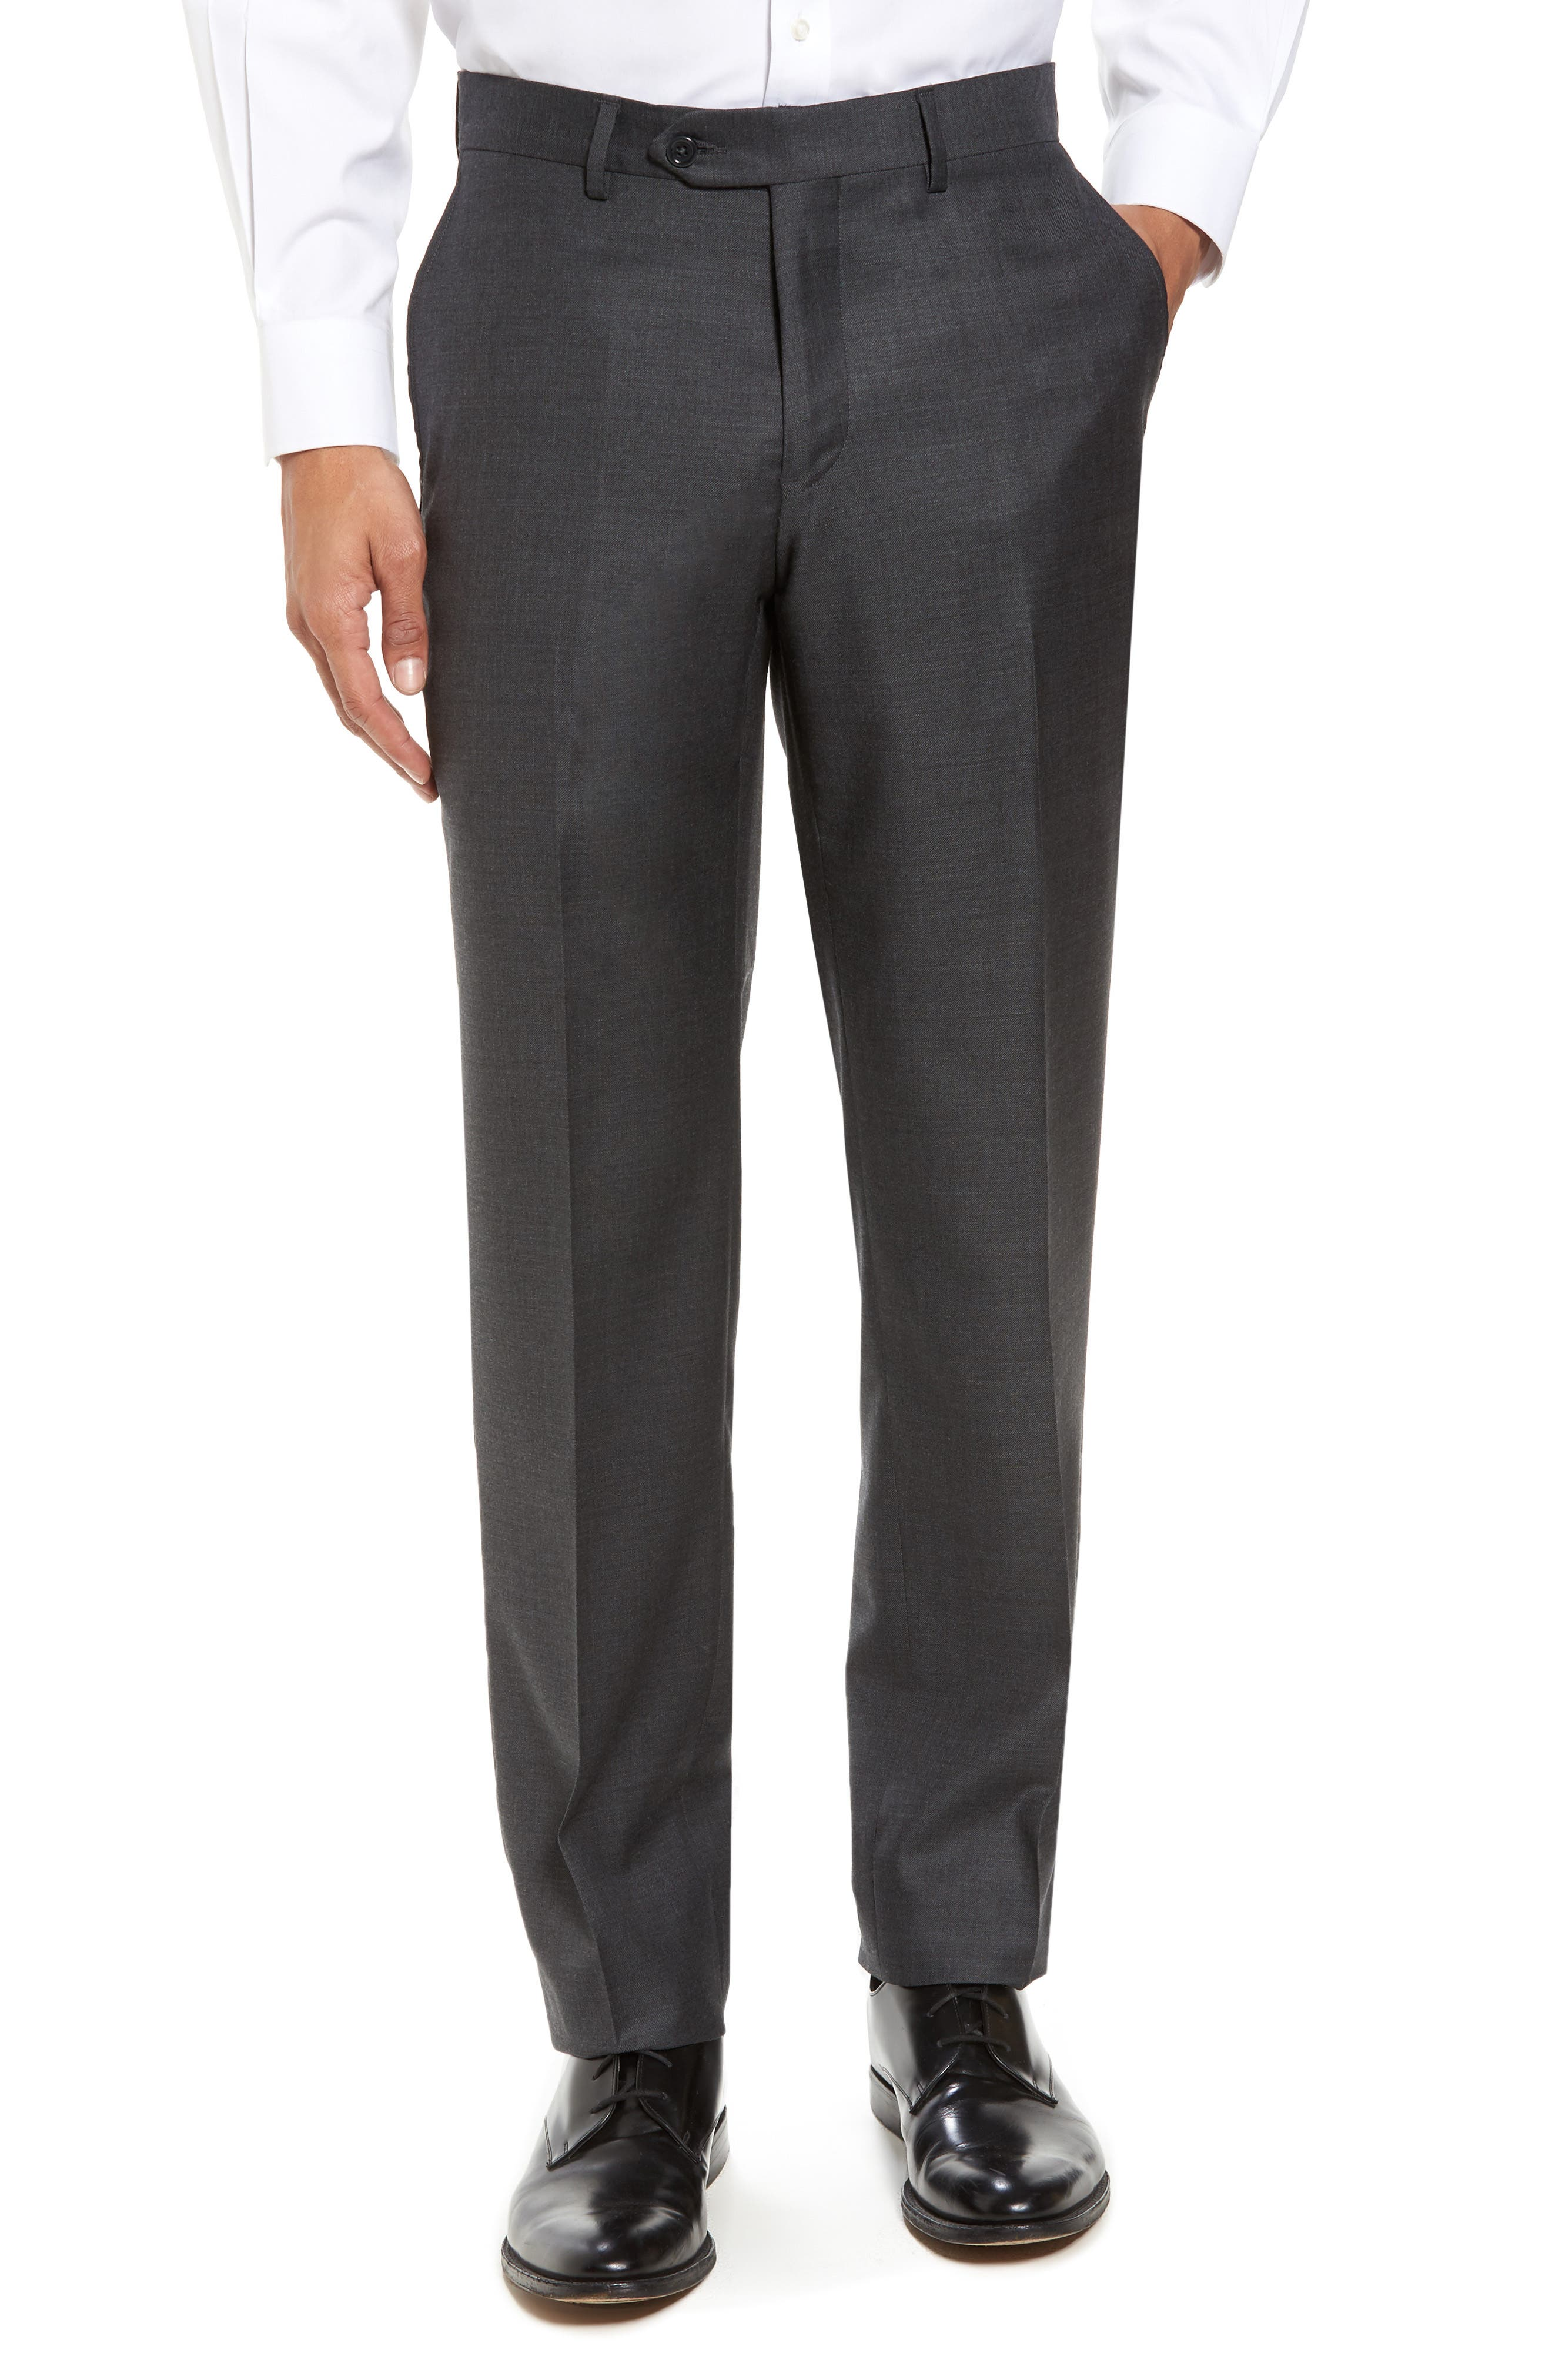 NORDSTROM MEN'S SHOP,                             Flat Front Sharkskin Wool Trousers,                             Main thumbnail 1, color,                             025